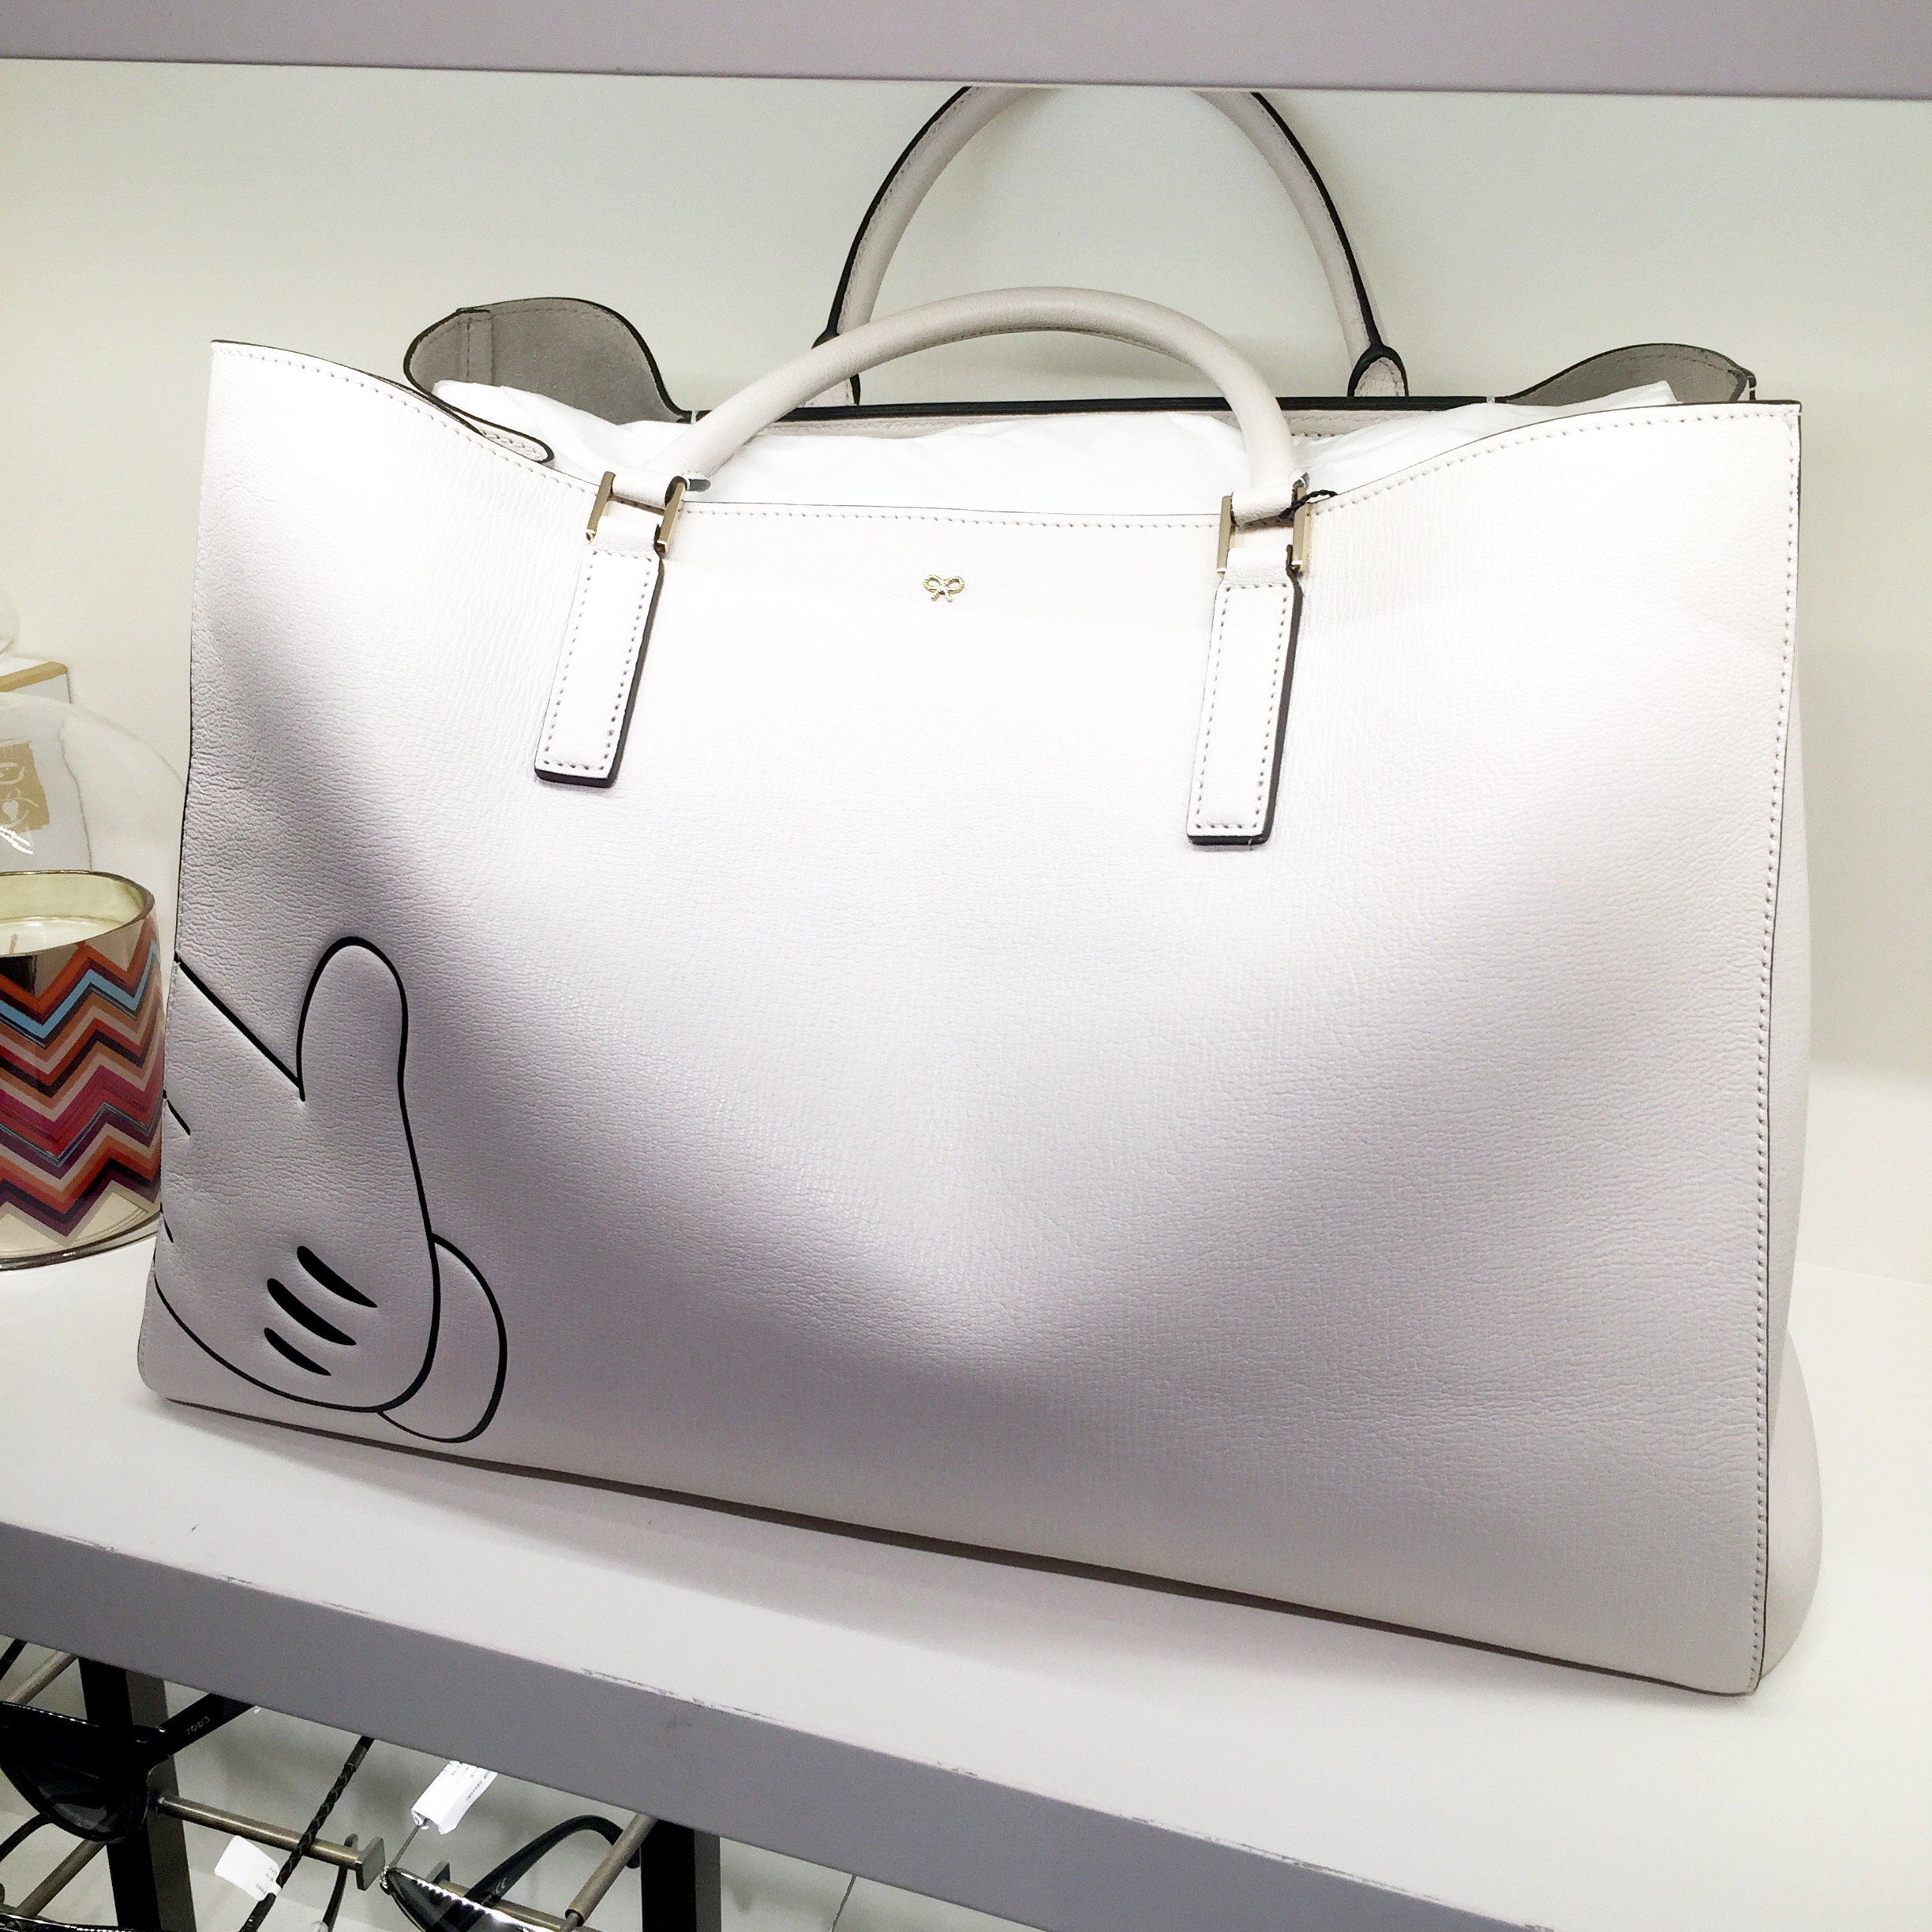 Anya Hindmarch Handbag exclusive to Four Seasons Orlando Resort at Walt Disney World